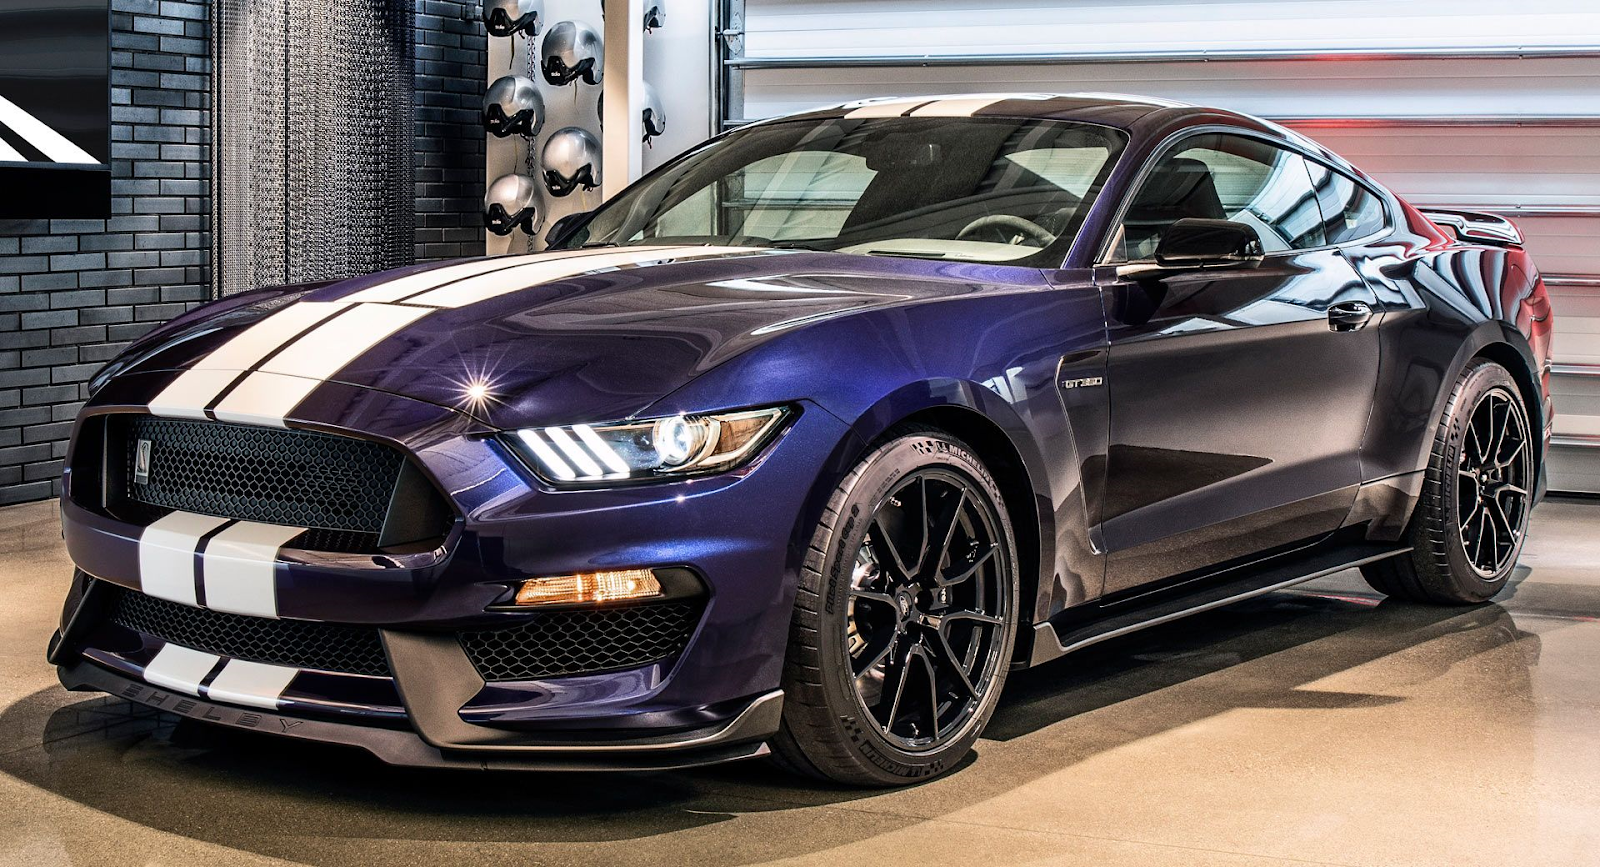 Mustang GT 350 Shelby